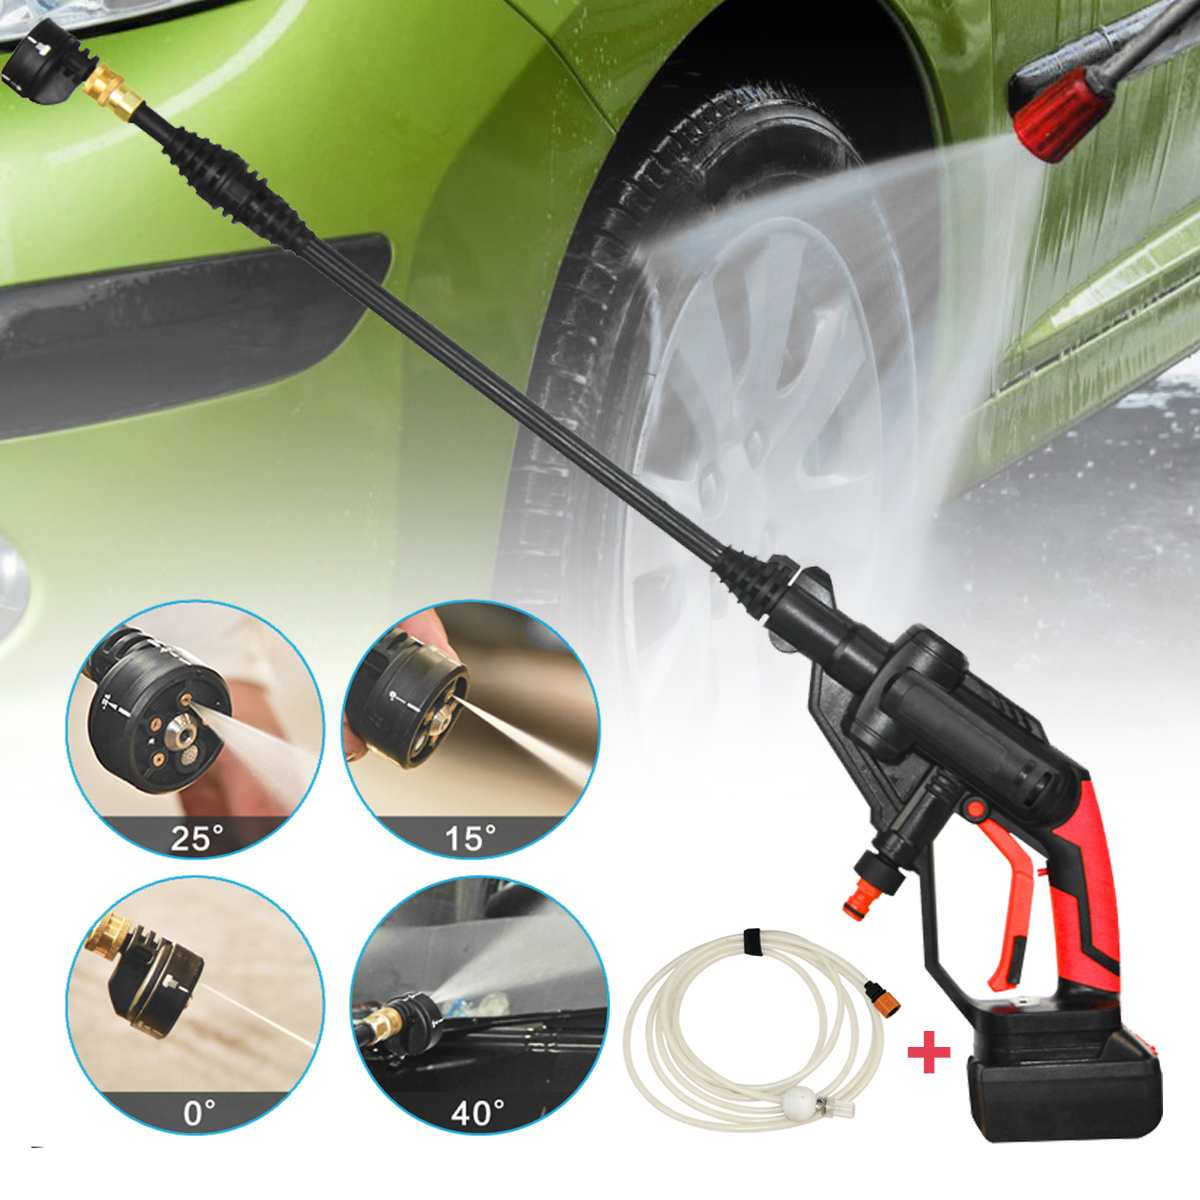 Nozzle-Pump Pressure-Cleaner Battery Cordless Washer Sprayer-Water-Hose Portable